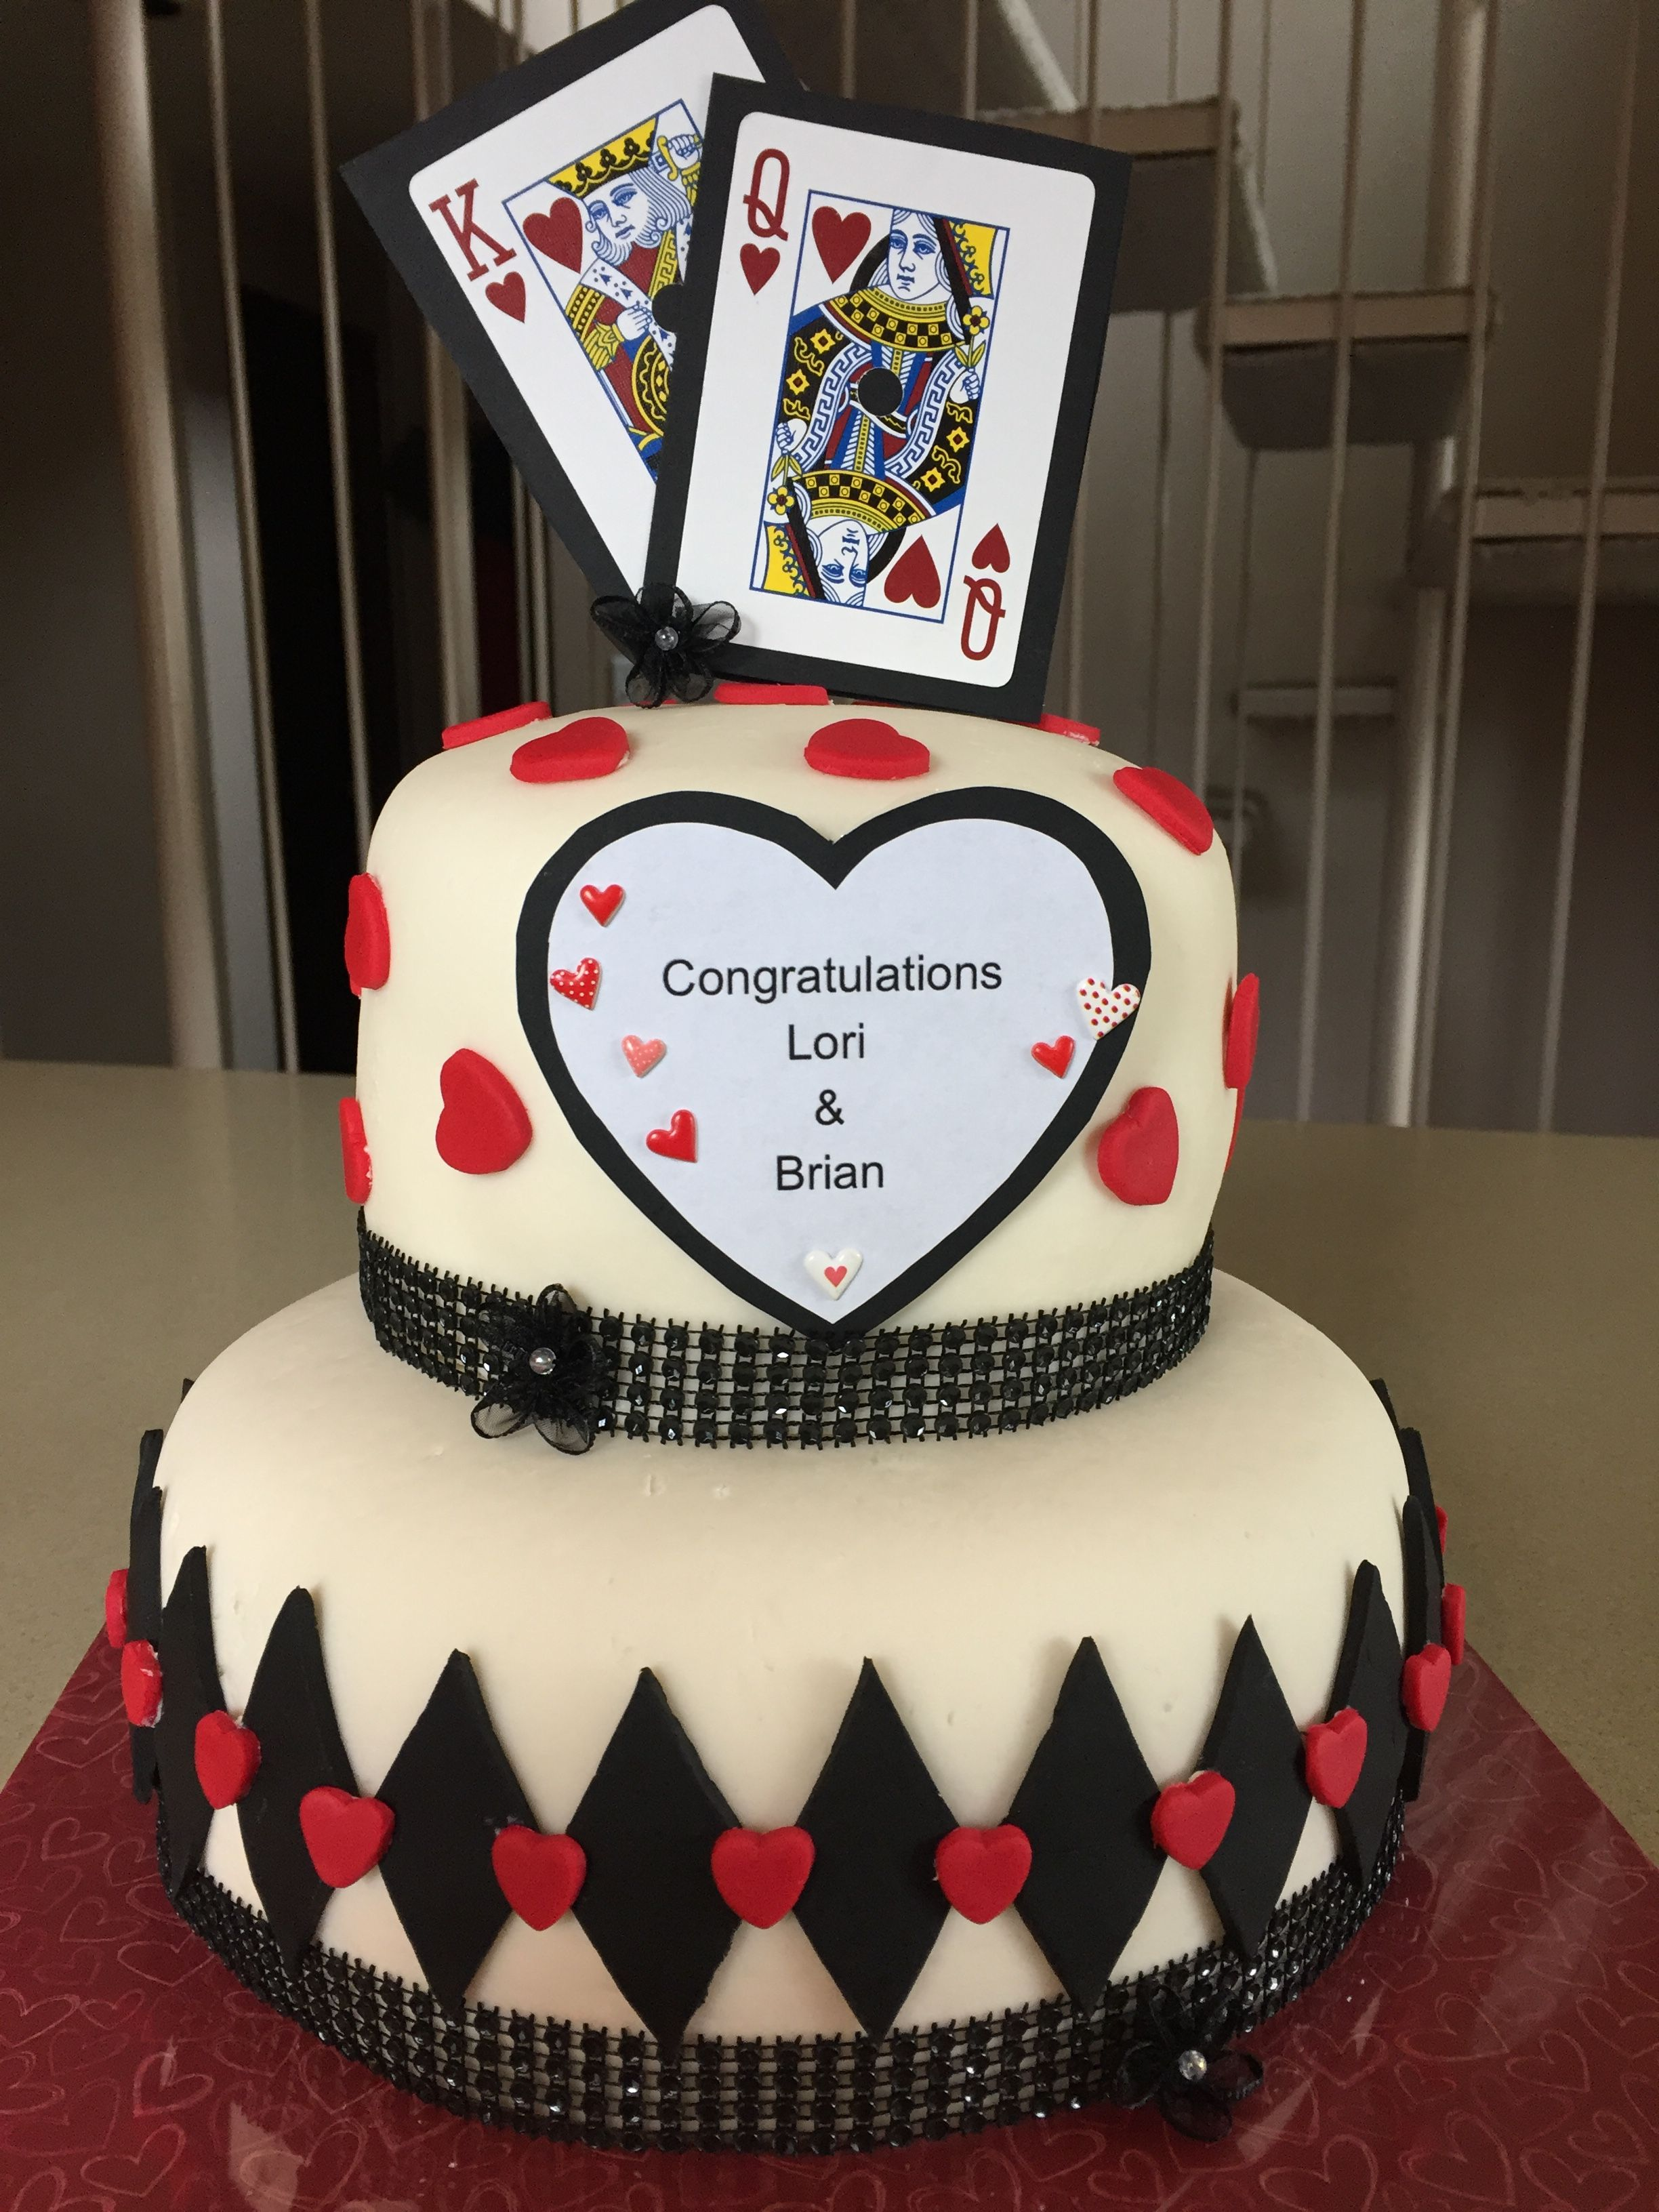 King And Queen Of Hearts Wedding Cake For Some Card Buffs Cake Cool Cake Designs Cake Designs Images